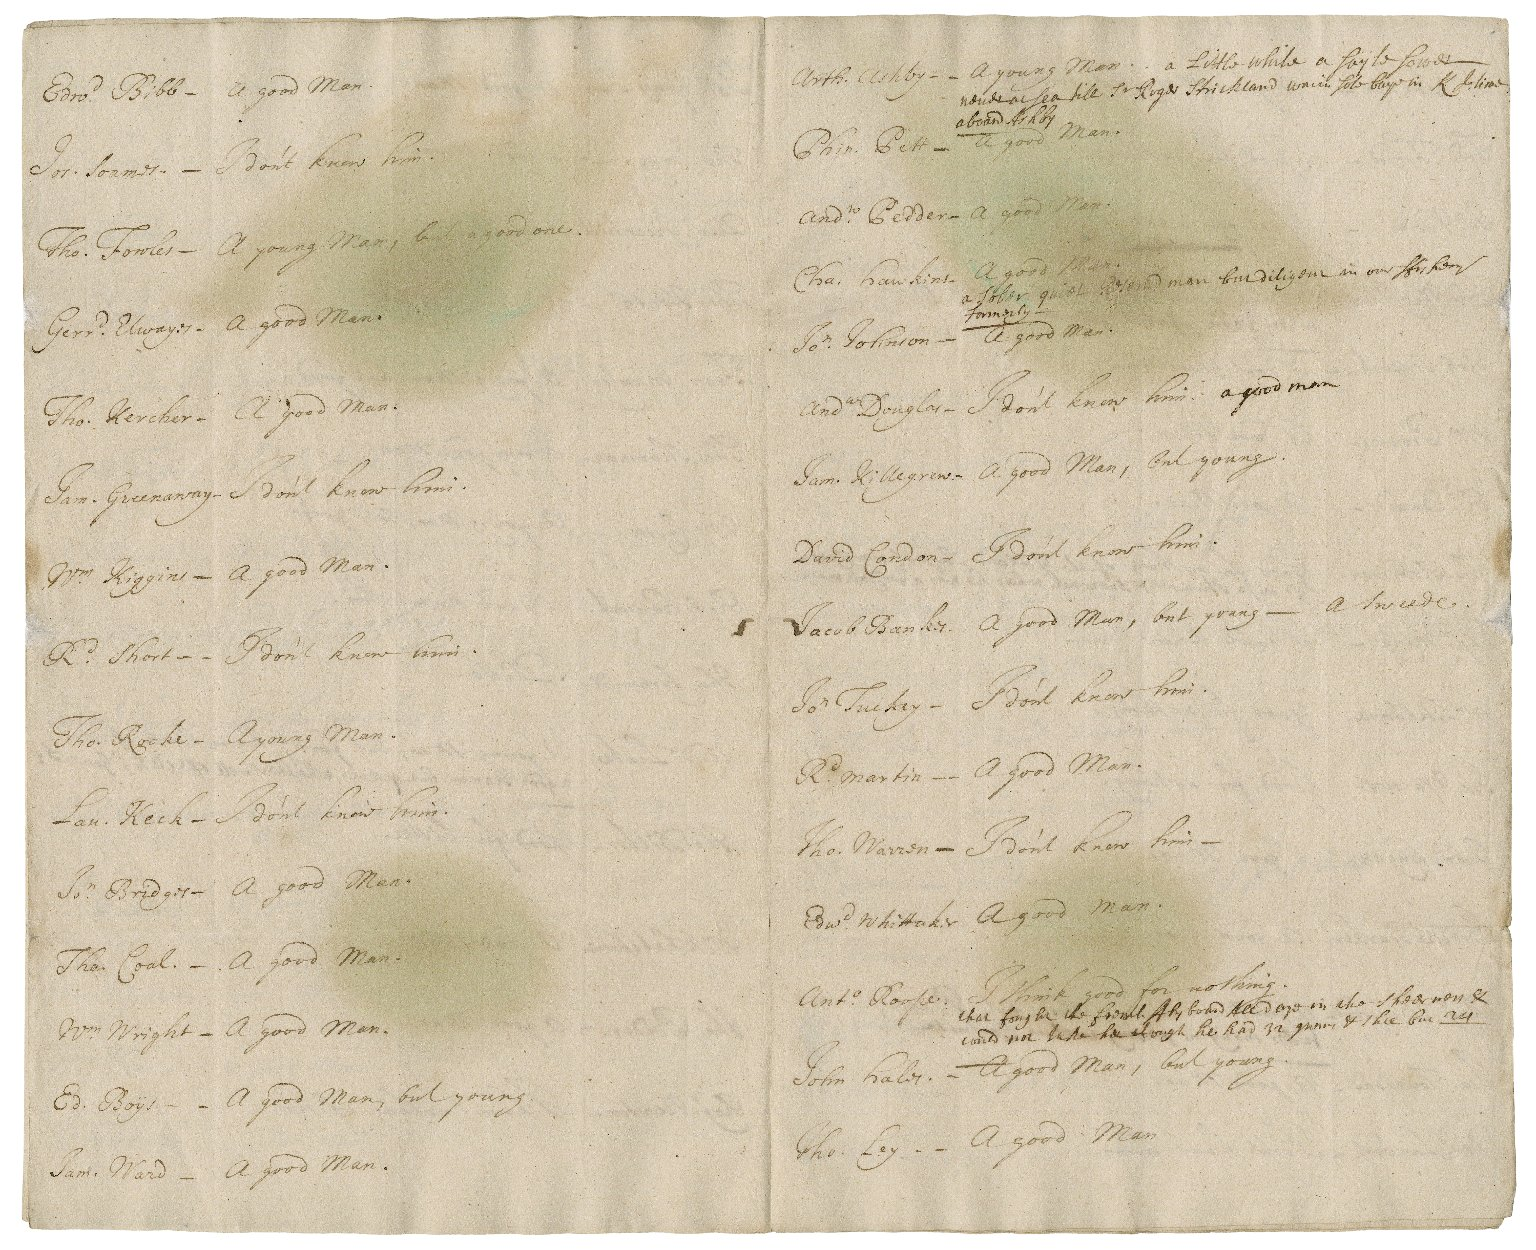 Report of the character of captains that served in the fleet the previous summer by Admiral Russell, later Earl of Orford